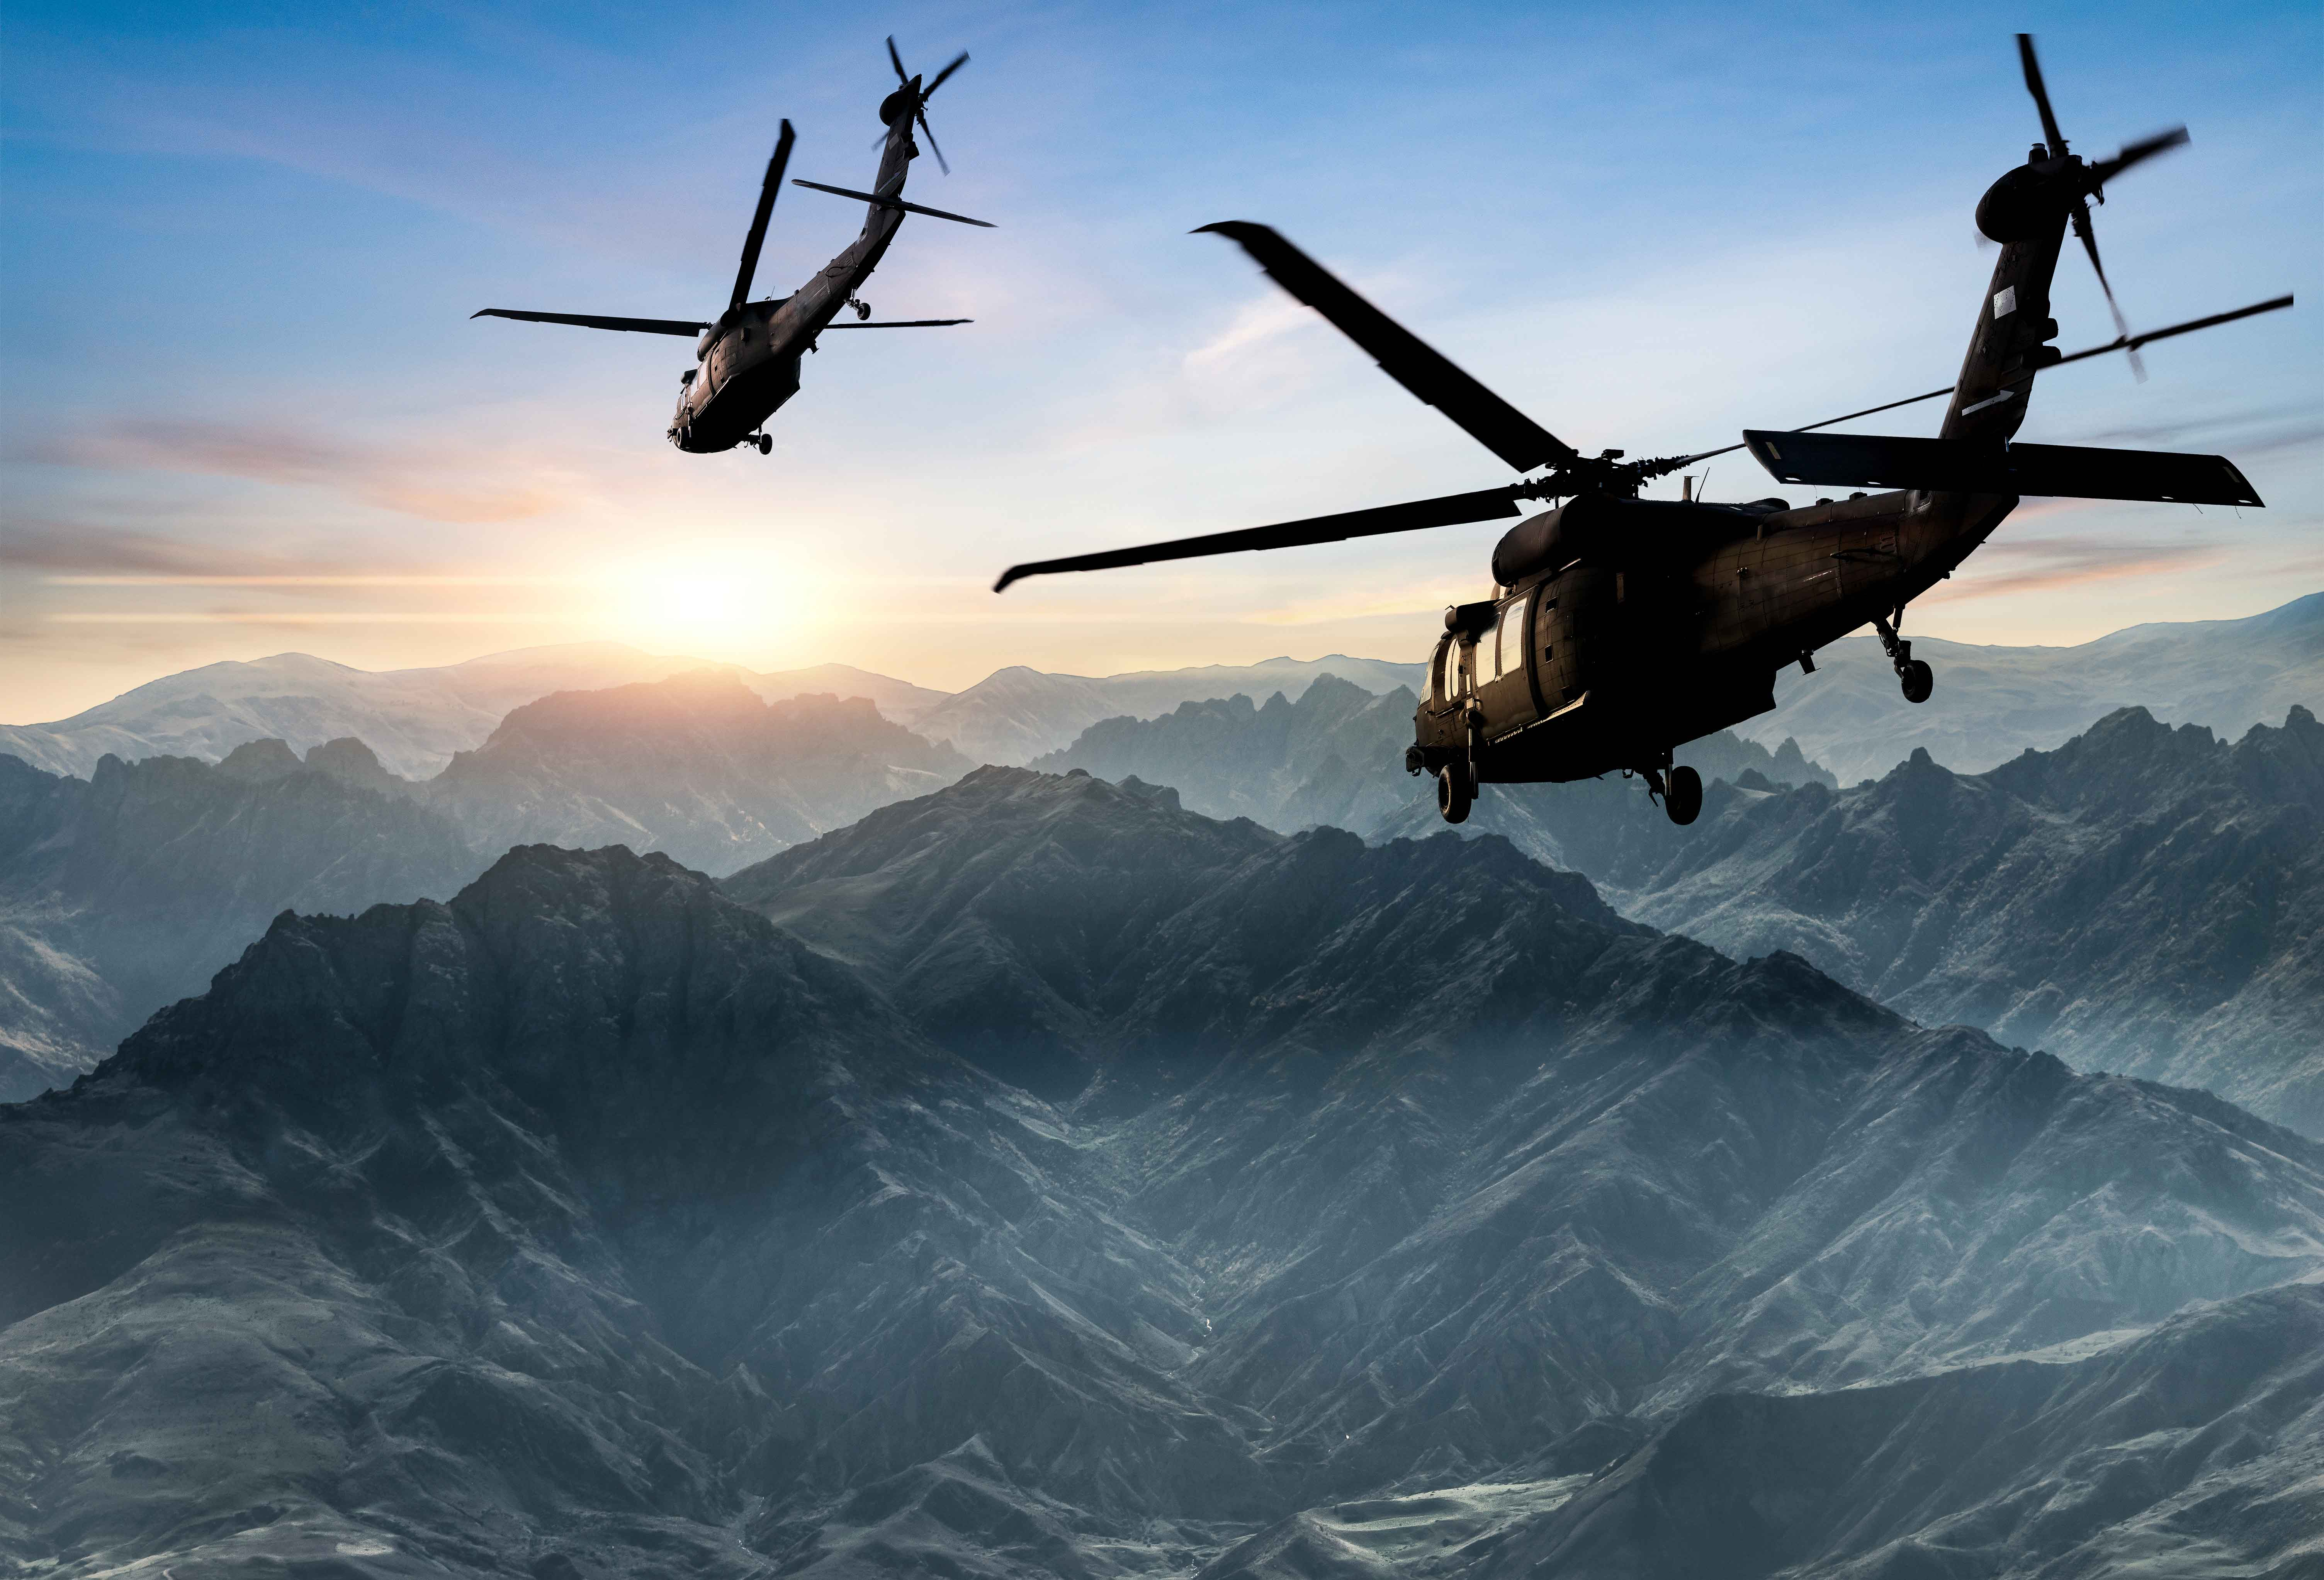 Helicopters flying over mountains